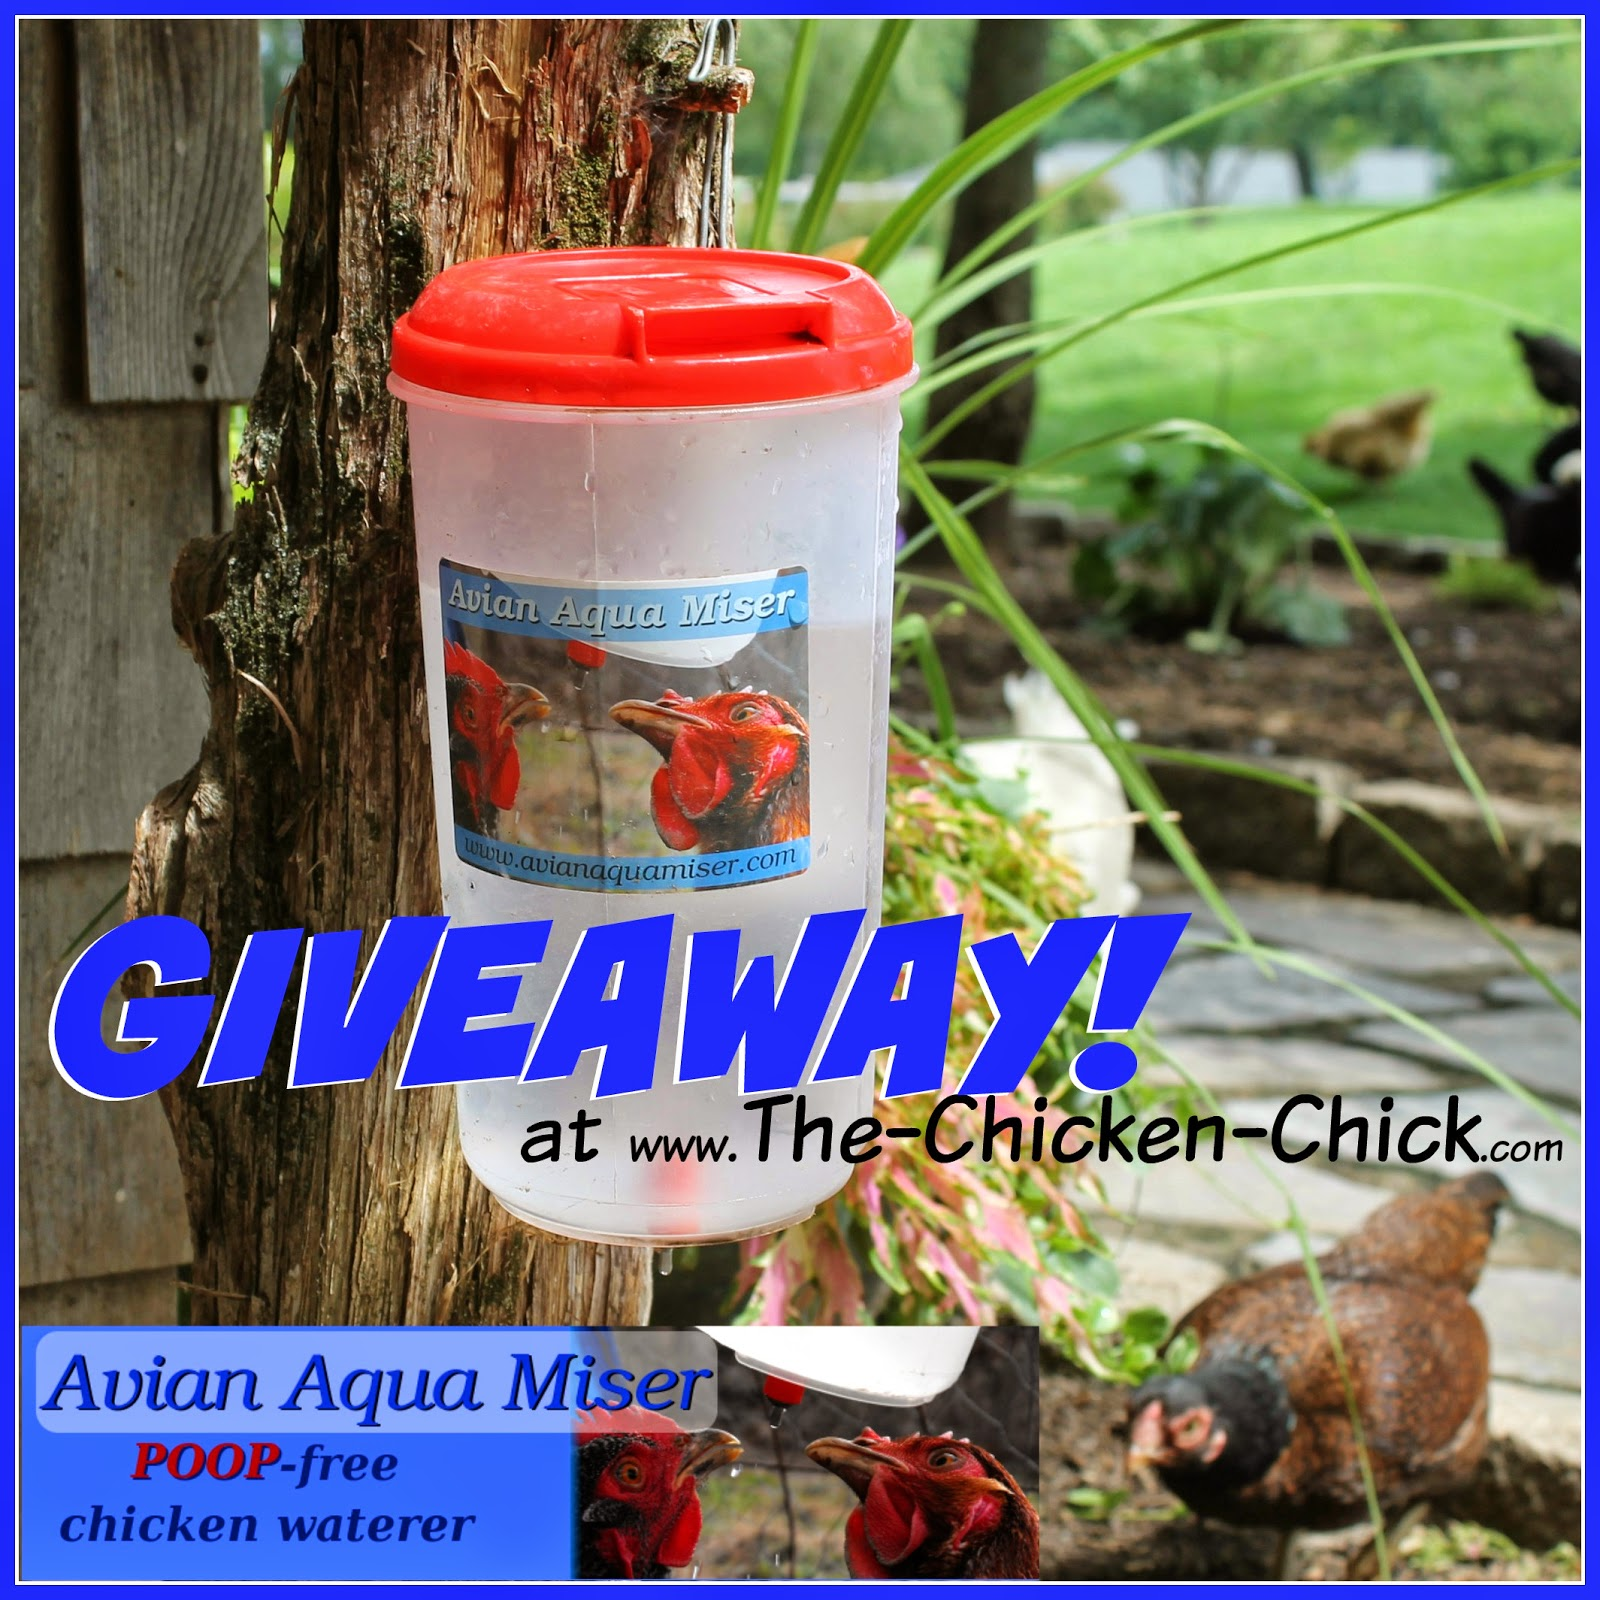 Avian Aqua Miser Original Giveaway at www.The-Chicken-Chick.com